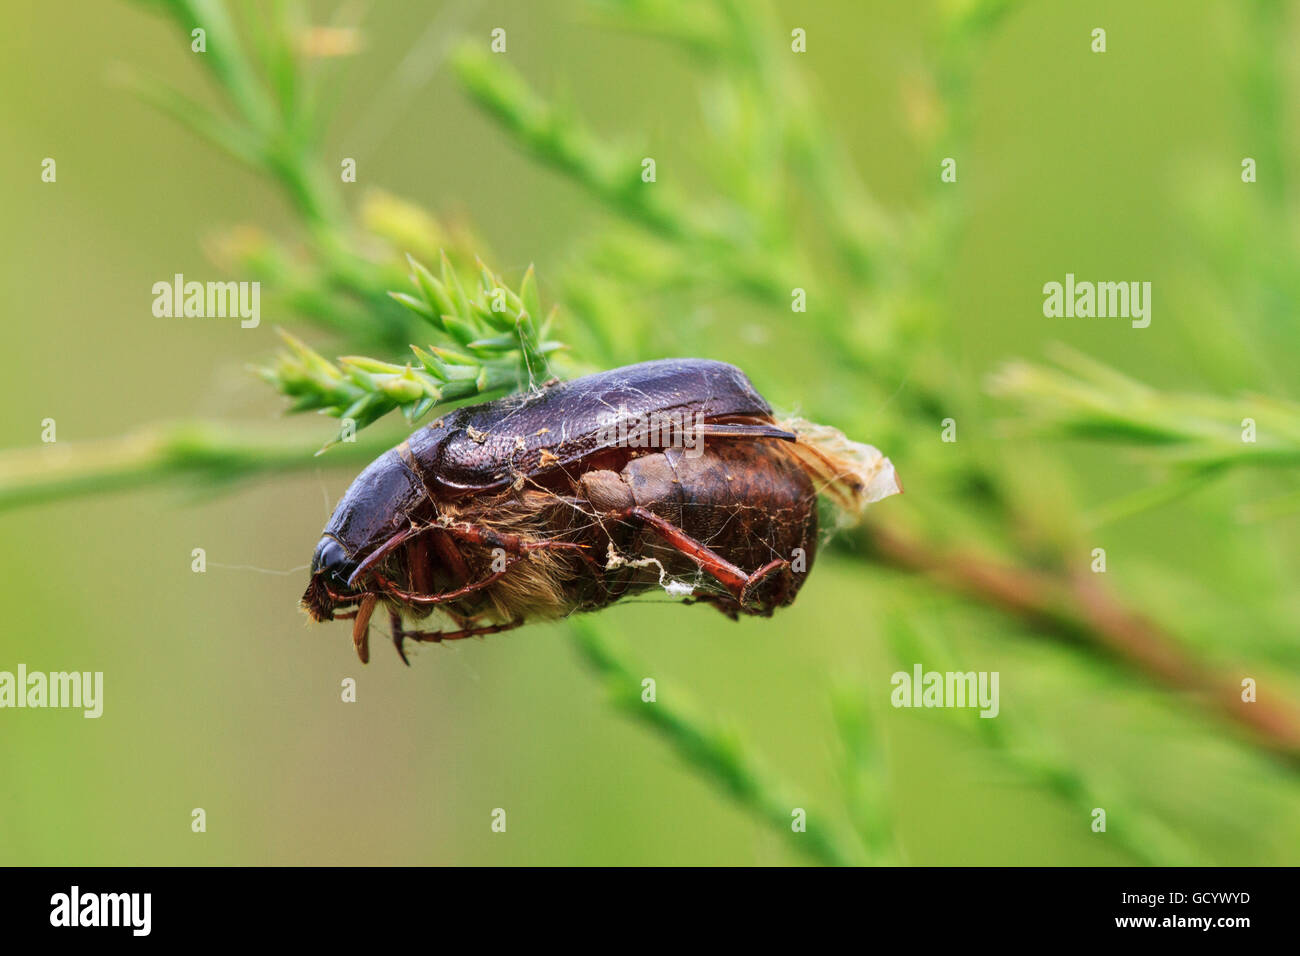 Beetle (Phyllophaga sp.) dangling on a plant stem, attached by being trapped in a spider web. - Stock Image